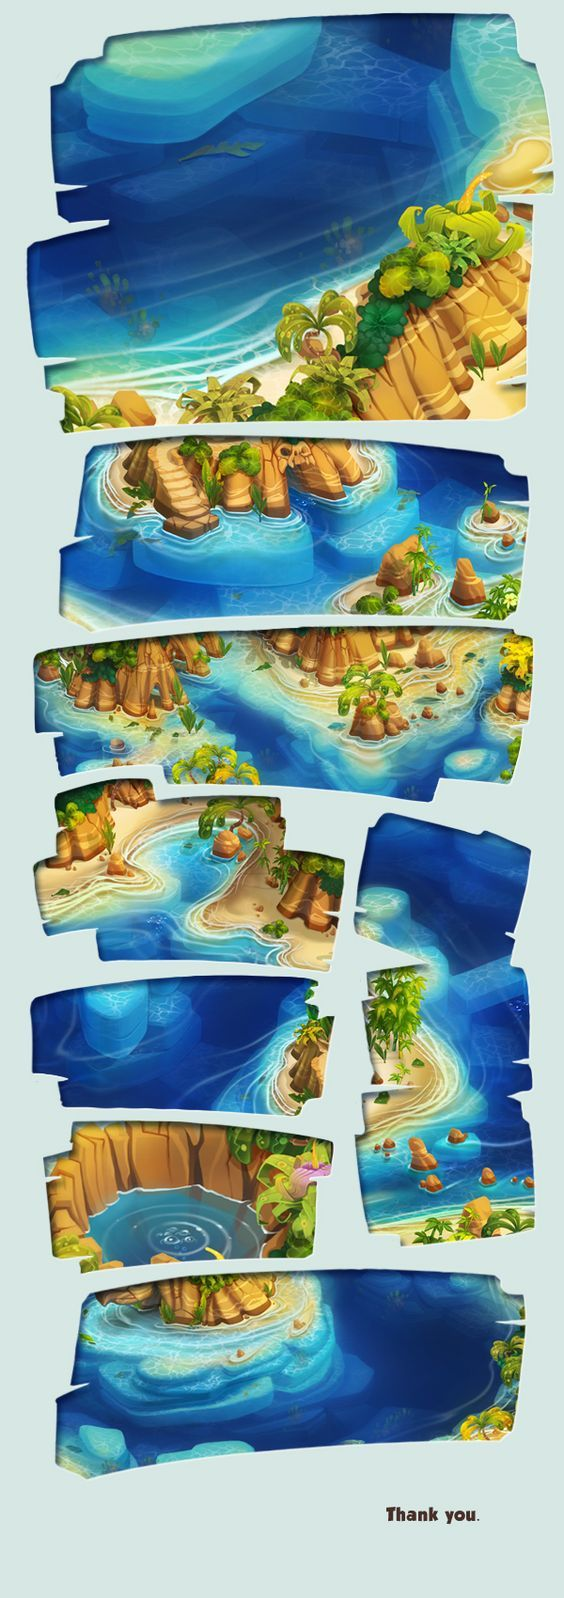 Pirate Legends TD Background 1 by Adrian